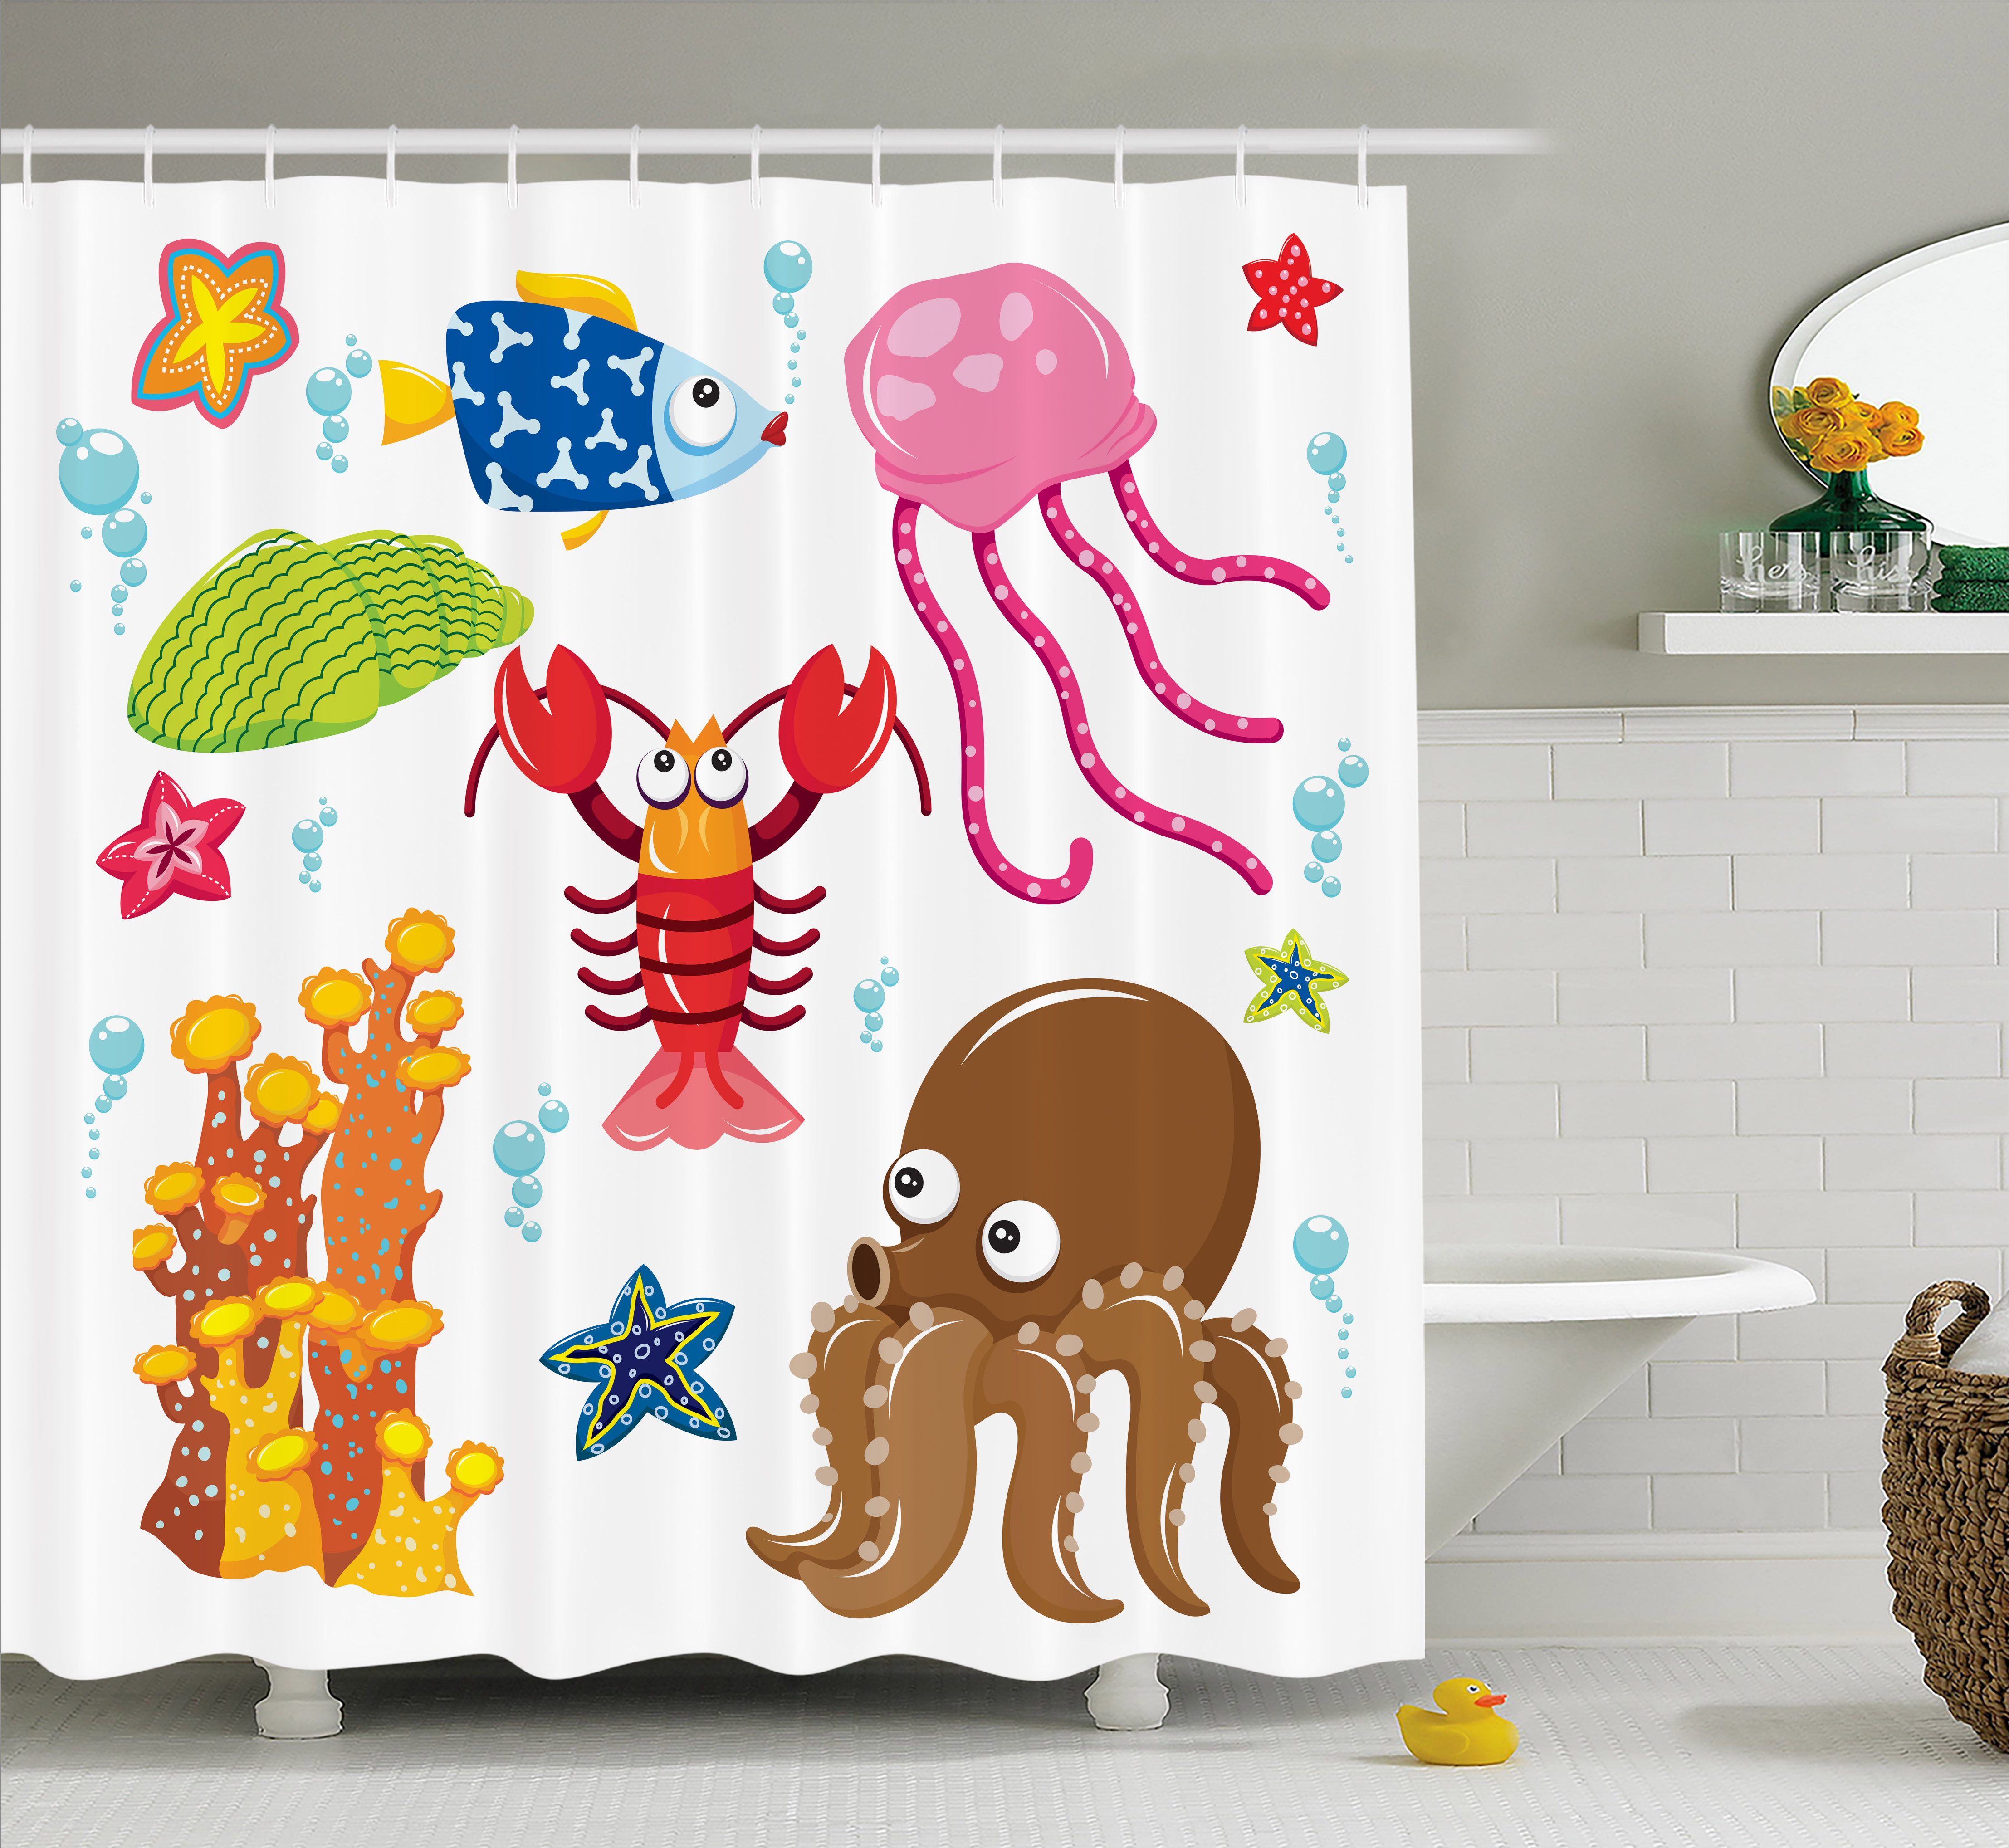 Toddler Shower Curtain, Under the Sea Wildlife Theme Funny Creatures in Cartoon Style Fun Ocean Aquarium, Fabric Bathroom Set with Hooks, 69W X 70L Inches, Multicolor, by Ambesonne